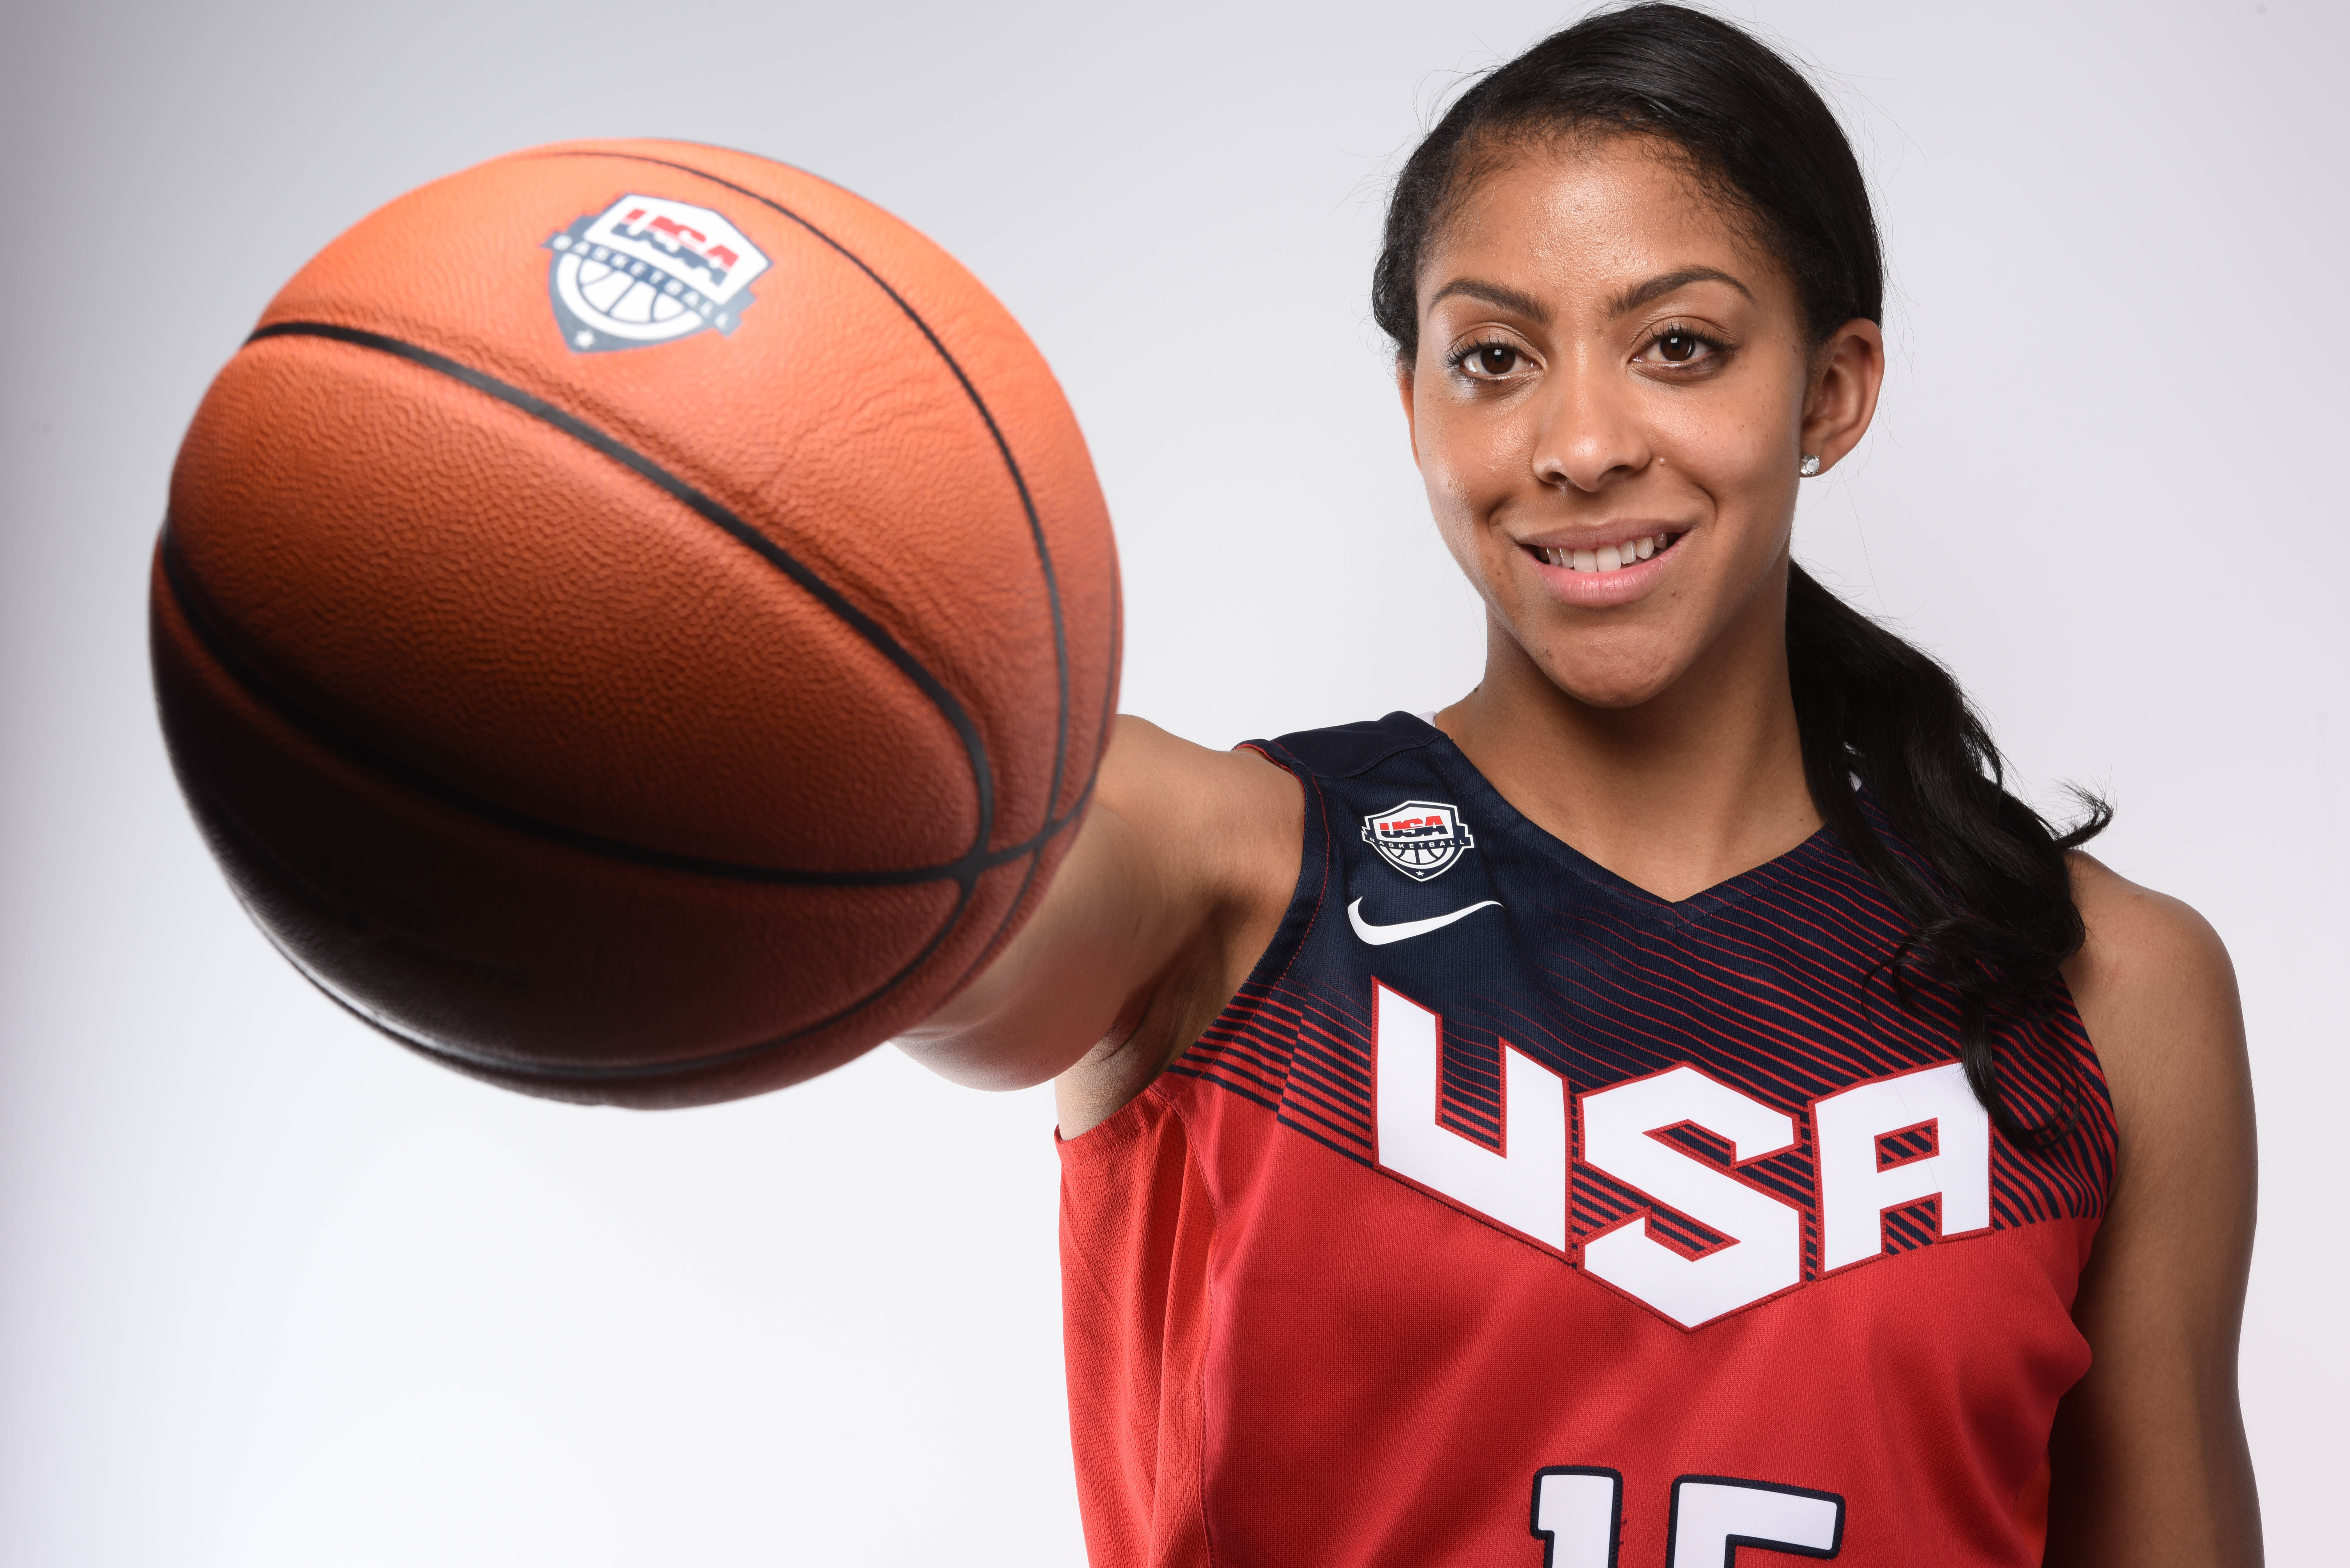 Two-time Olympian Candace Parker is heading to Rio in hopes of winning her third Olympic gold (Robert Hanashiro, USA TODAY Sports)